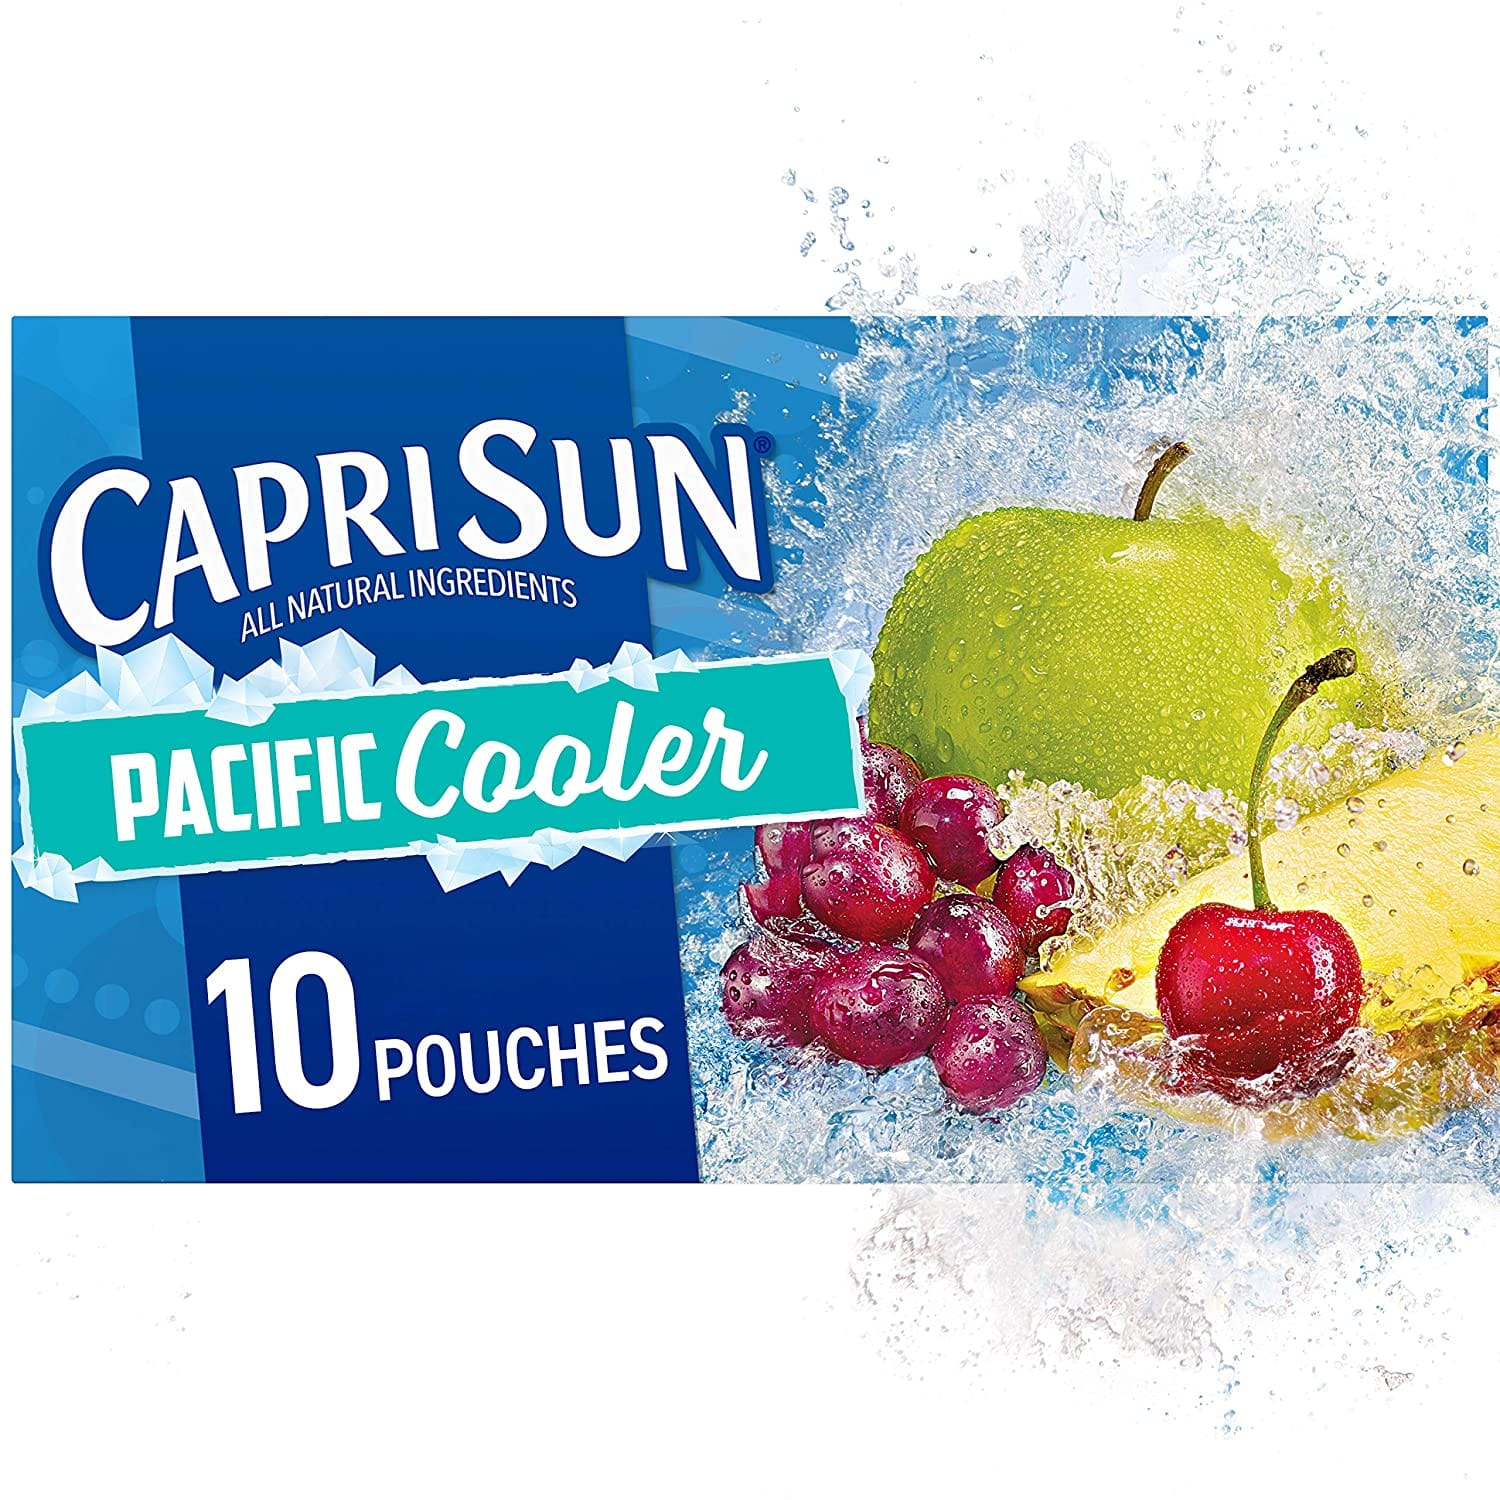 10-Pack 6-Oz Capri Sun Ready-to-Drink Juice (Pacific Cooler) $1.58 w/ S&S + Free Shipping w/ Prime or $25+